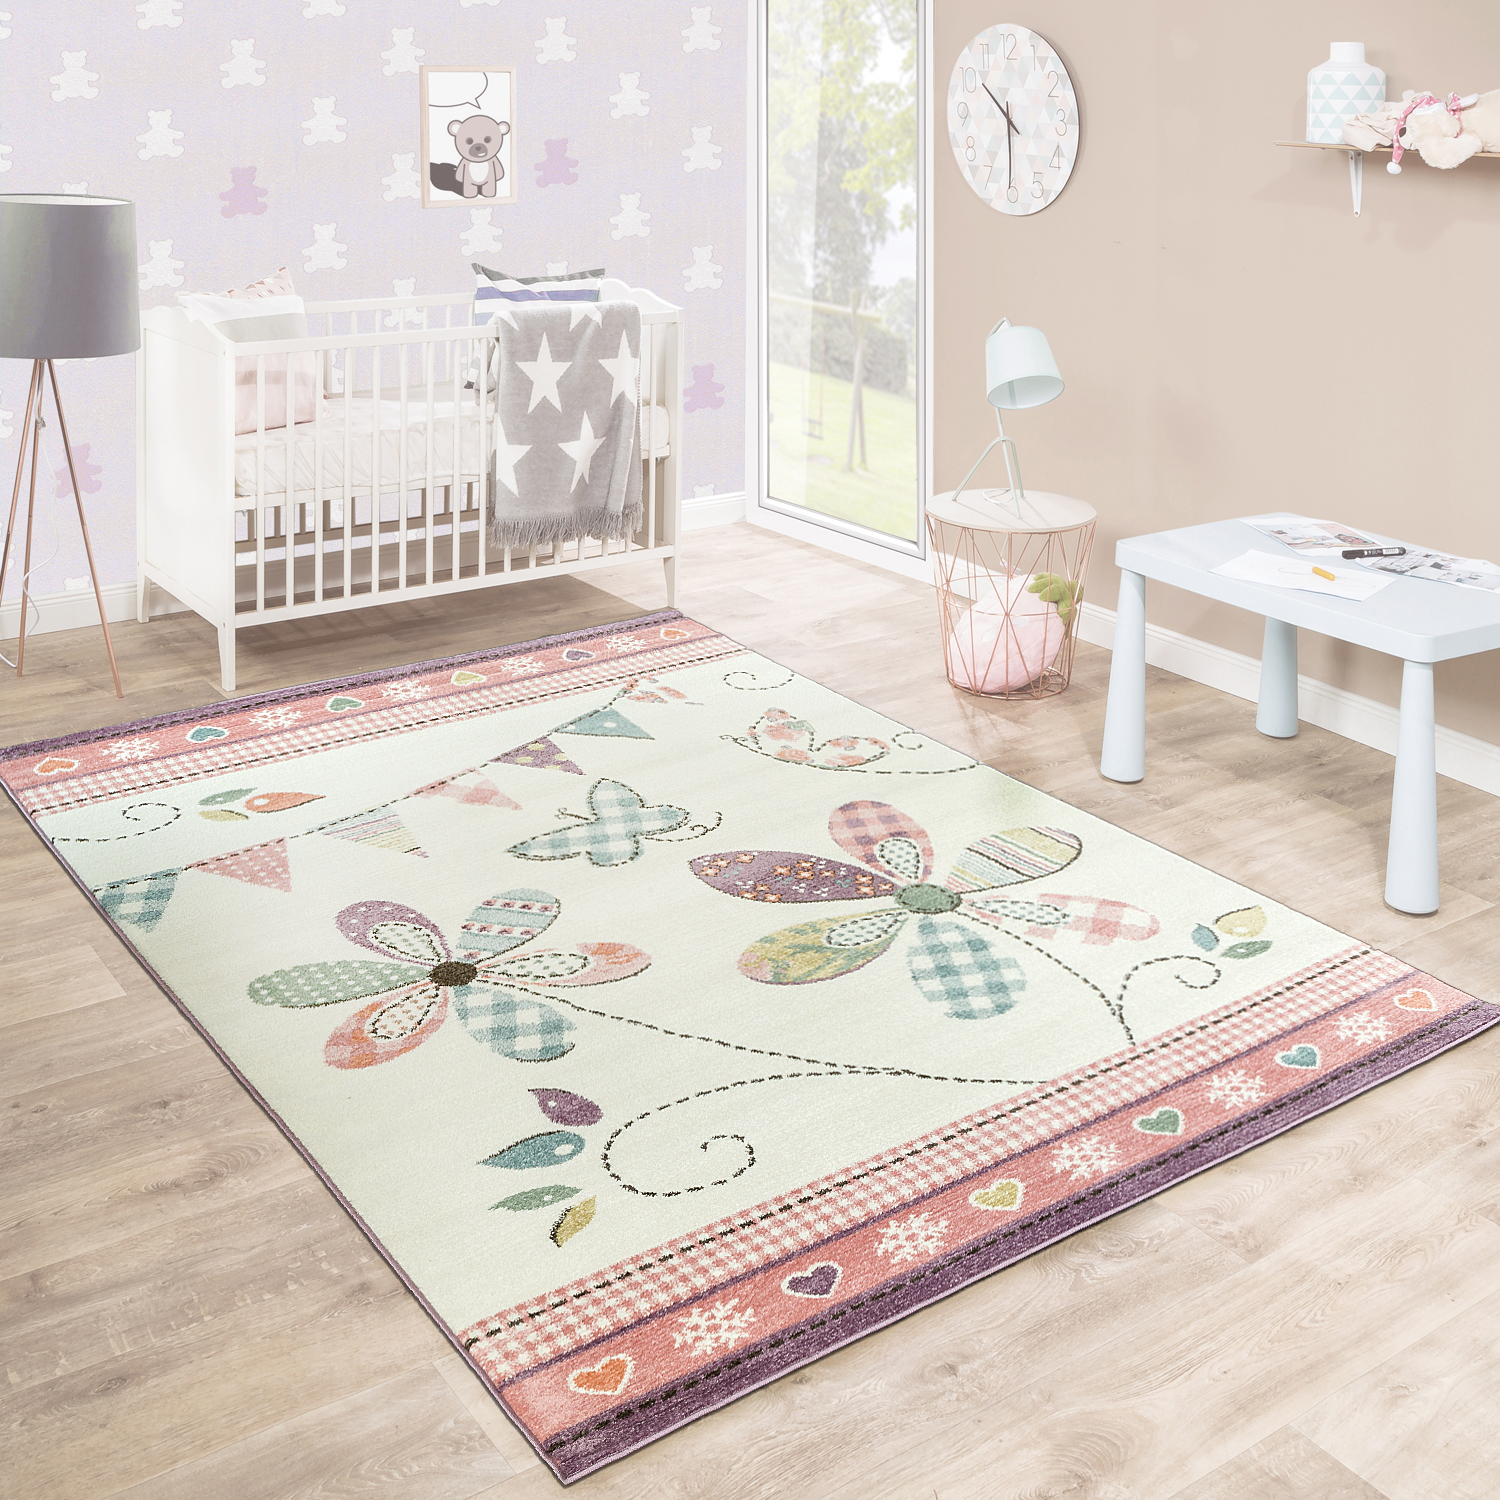 Baby Room Rugs Uk: Children'S Rug, Floral, Pastel, Cream